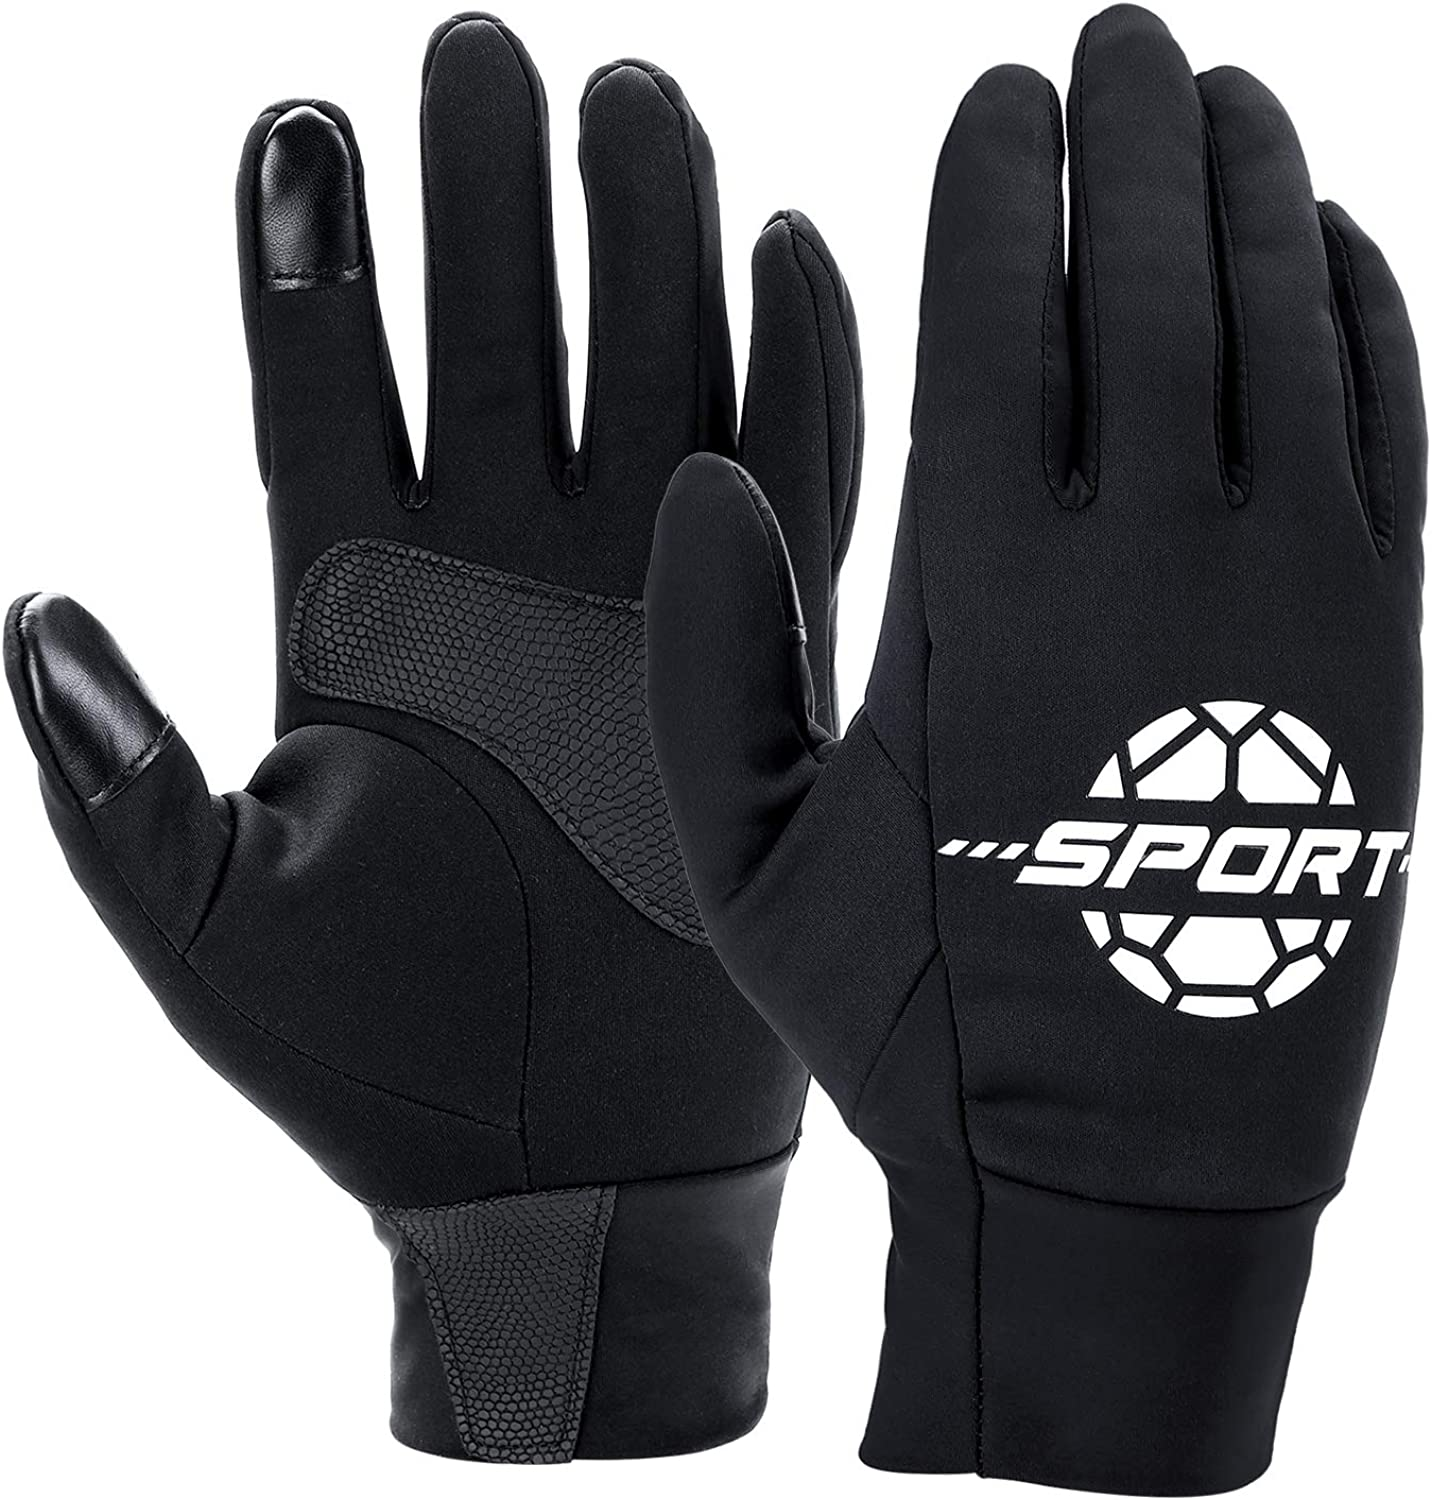 Winter Gloves for Men Women - Black Warm Mittens Liners Athletic Sport Running Cycling Driving Bike Hiking Touchscreen : Sports & Outdoors